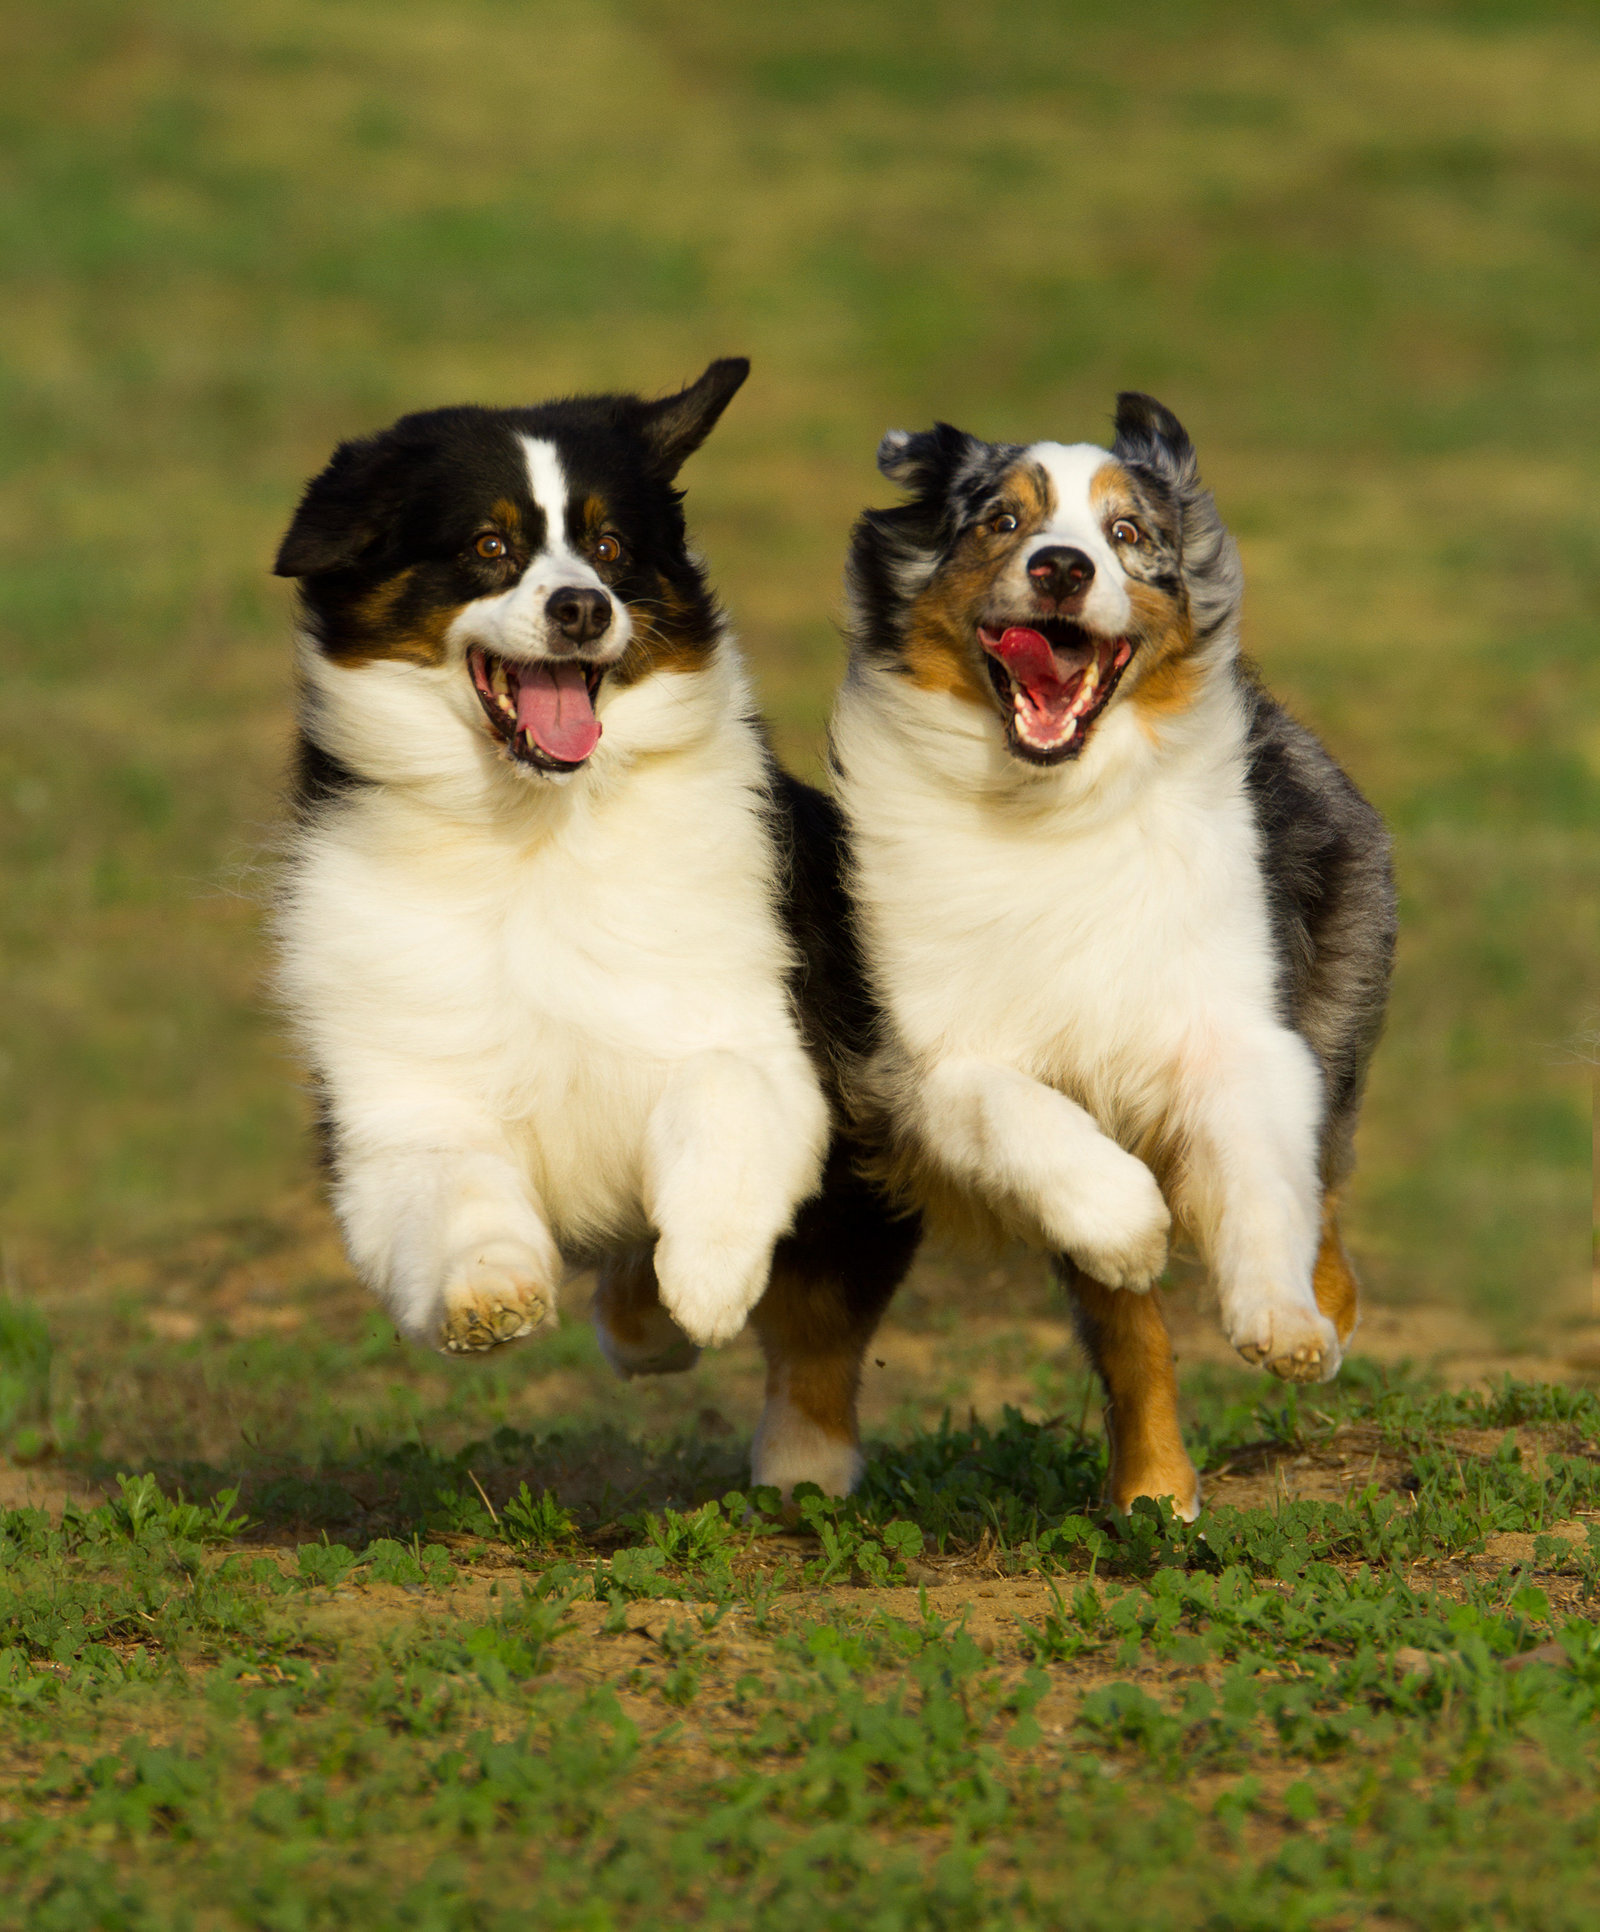 Happy dogs running together in San Diego, CA photo